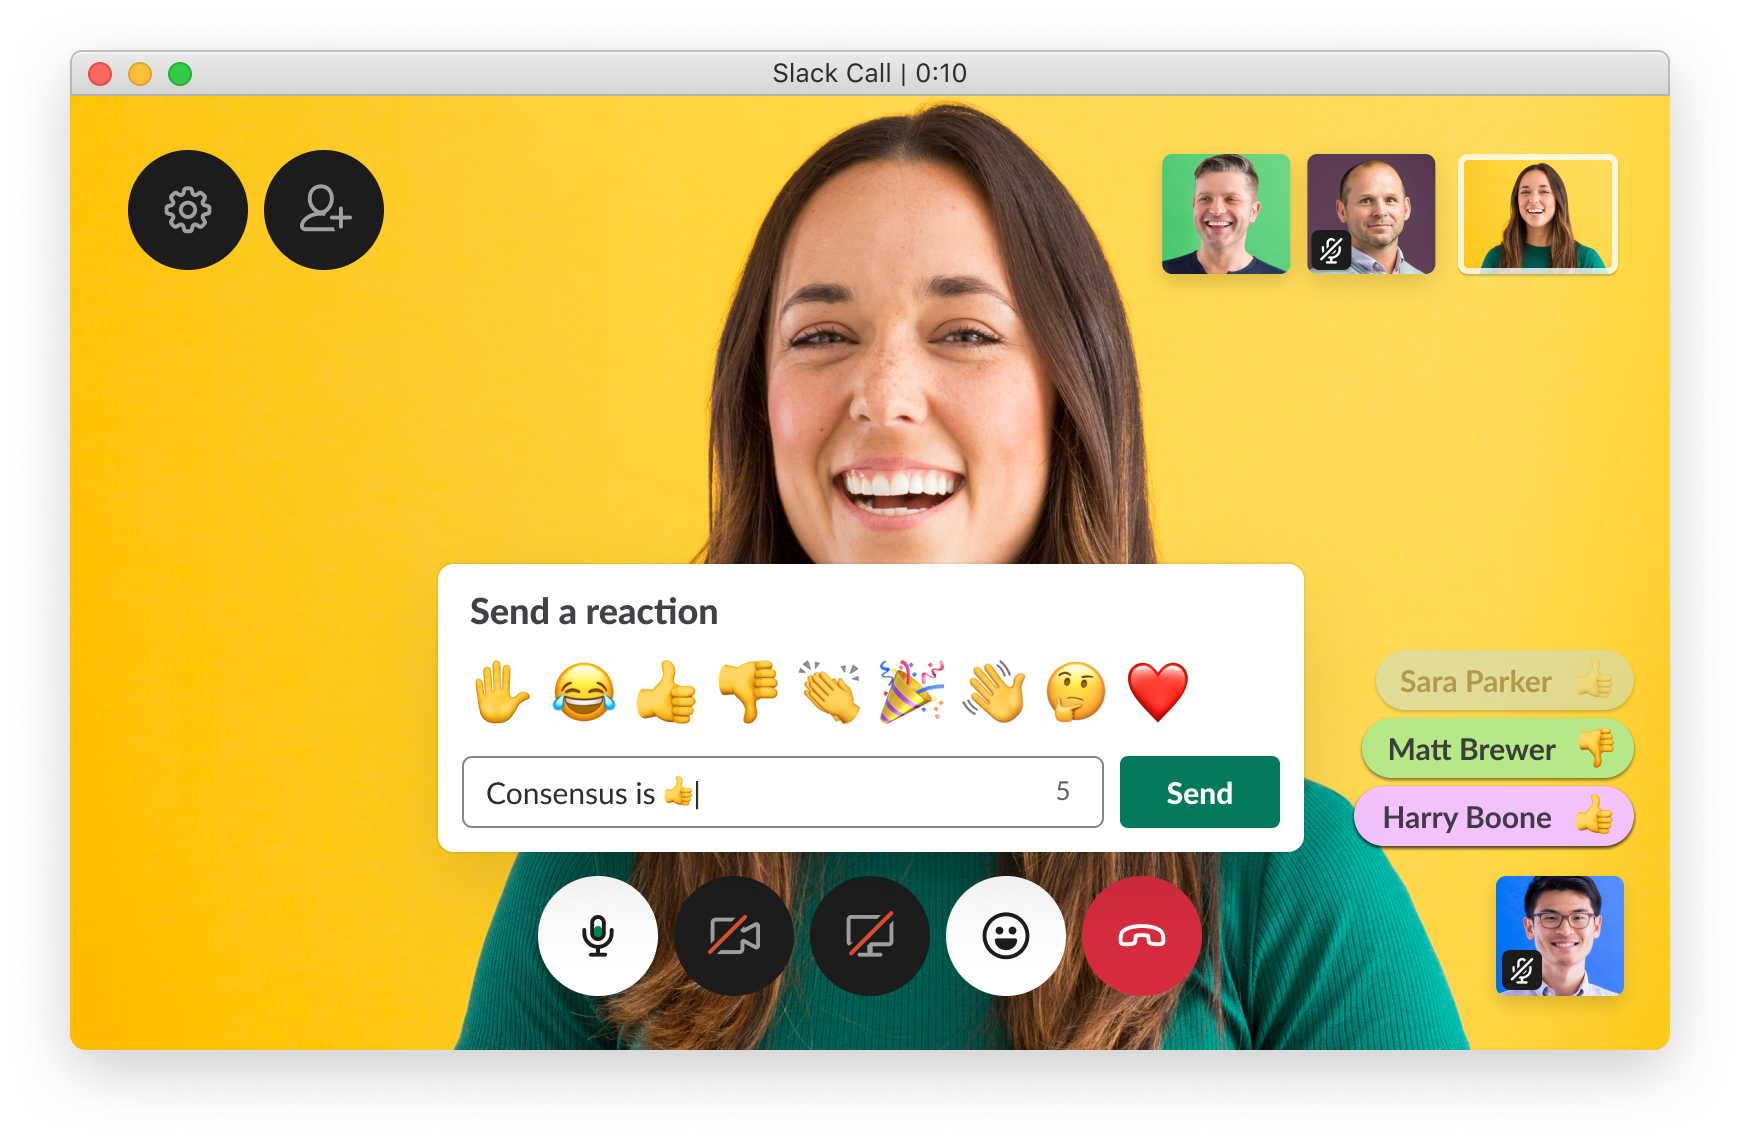 Members can now send short messages while on a Slack call